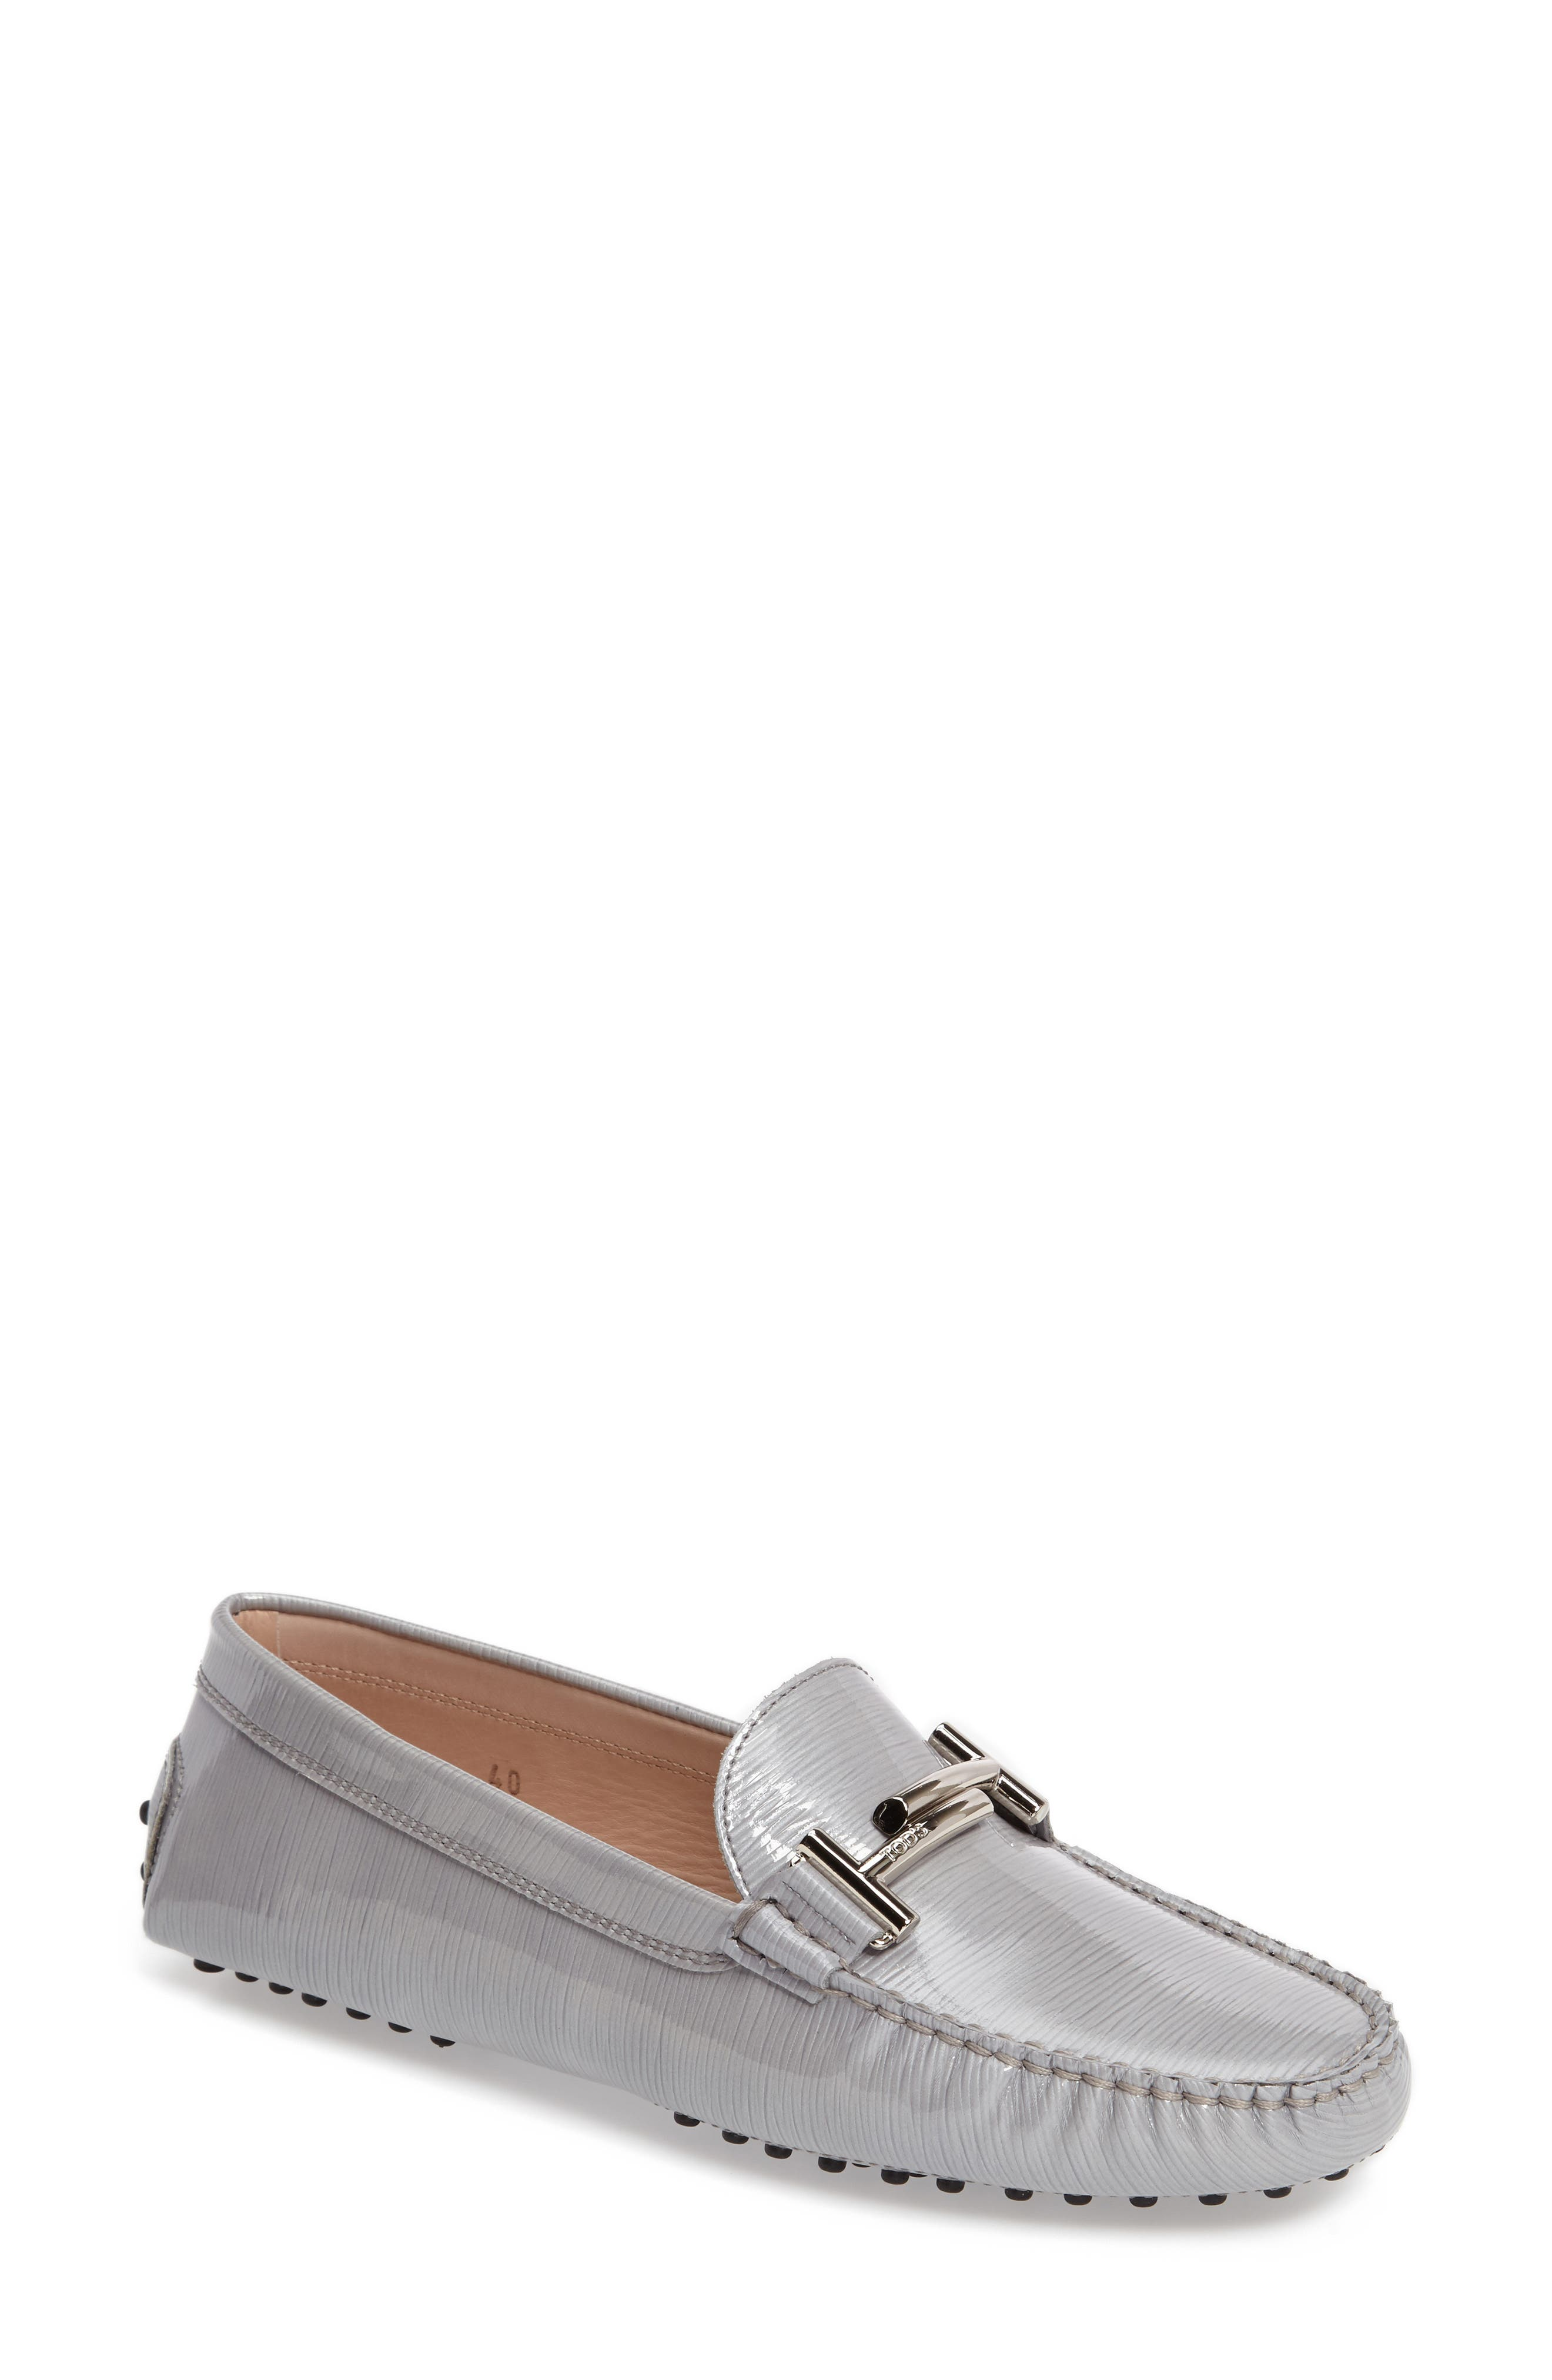 Alternate Image 1 Selected - Tod's Gommino Double-T Striated Driving Shoe (Women)